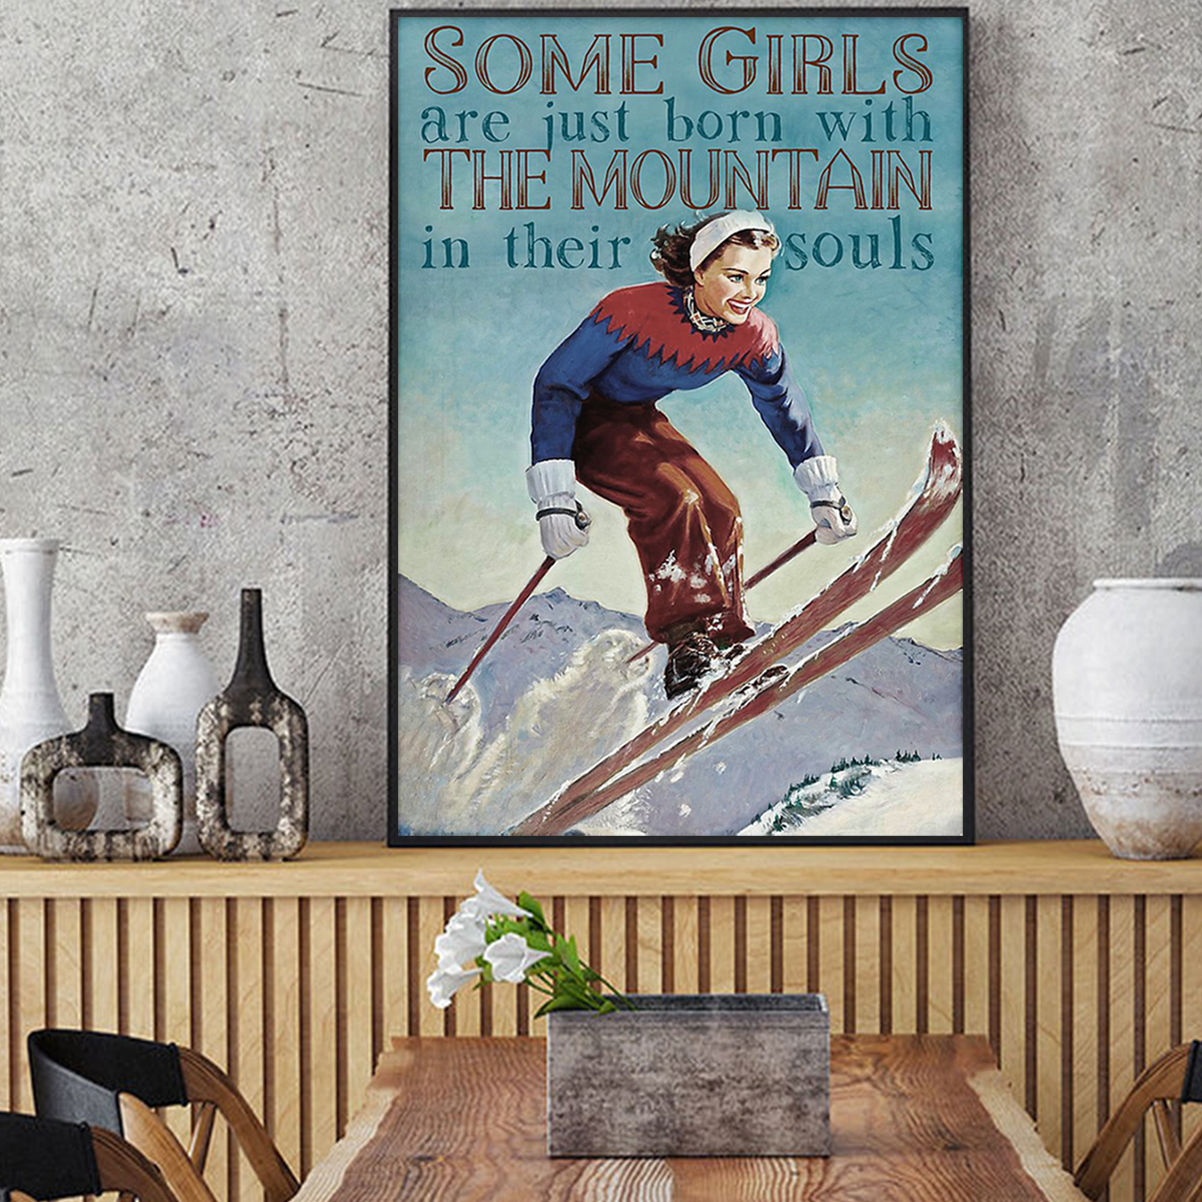 Skiing some girls are just born with the moutain in their souls poster A1